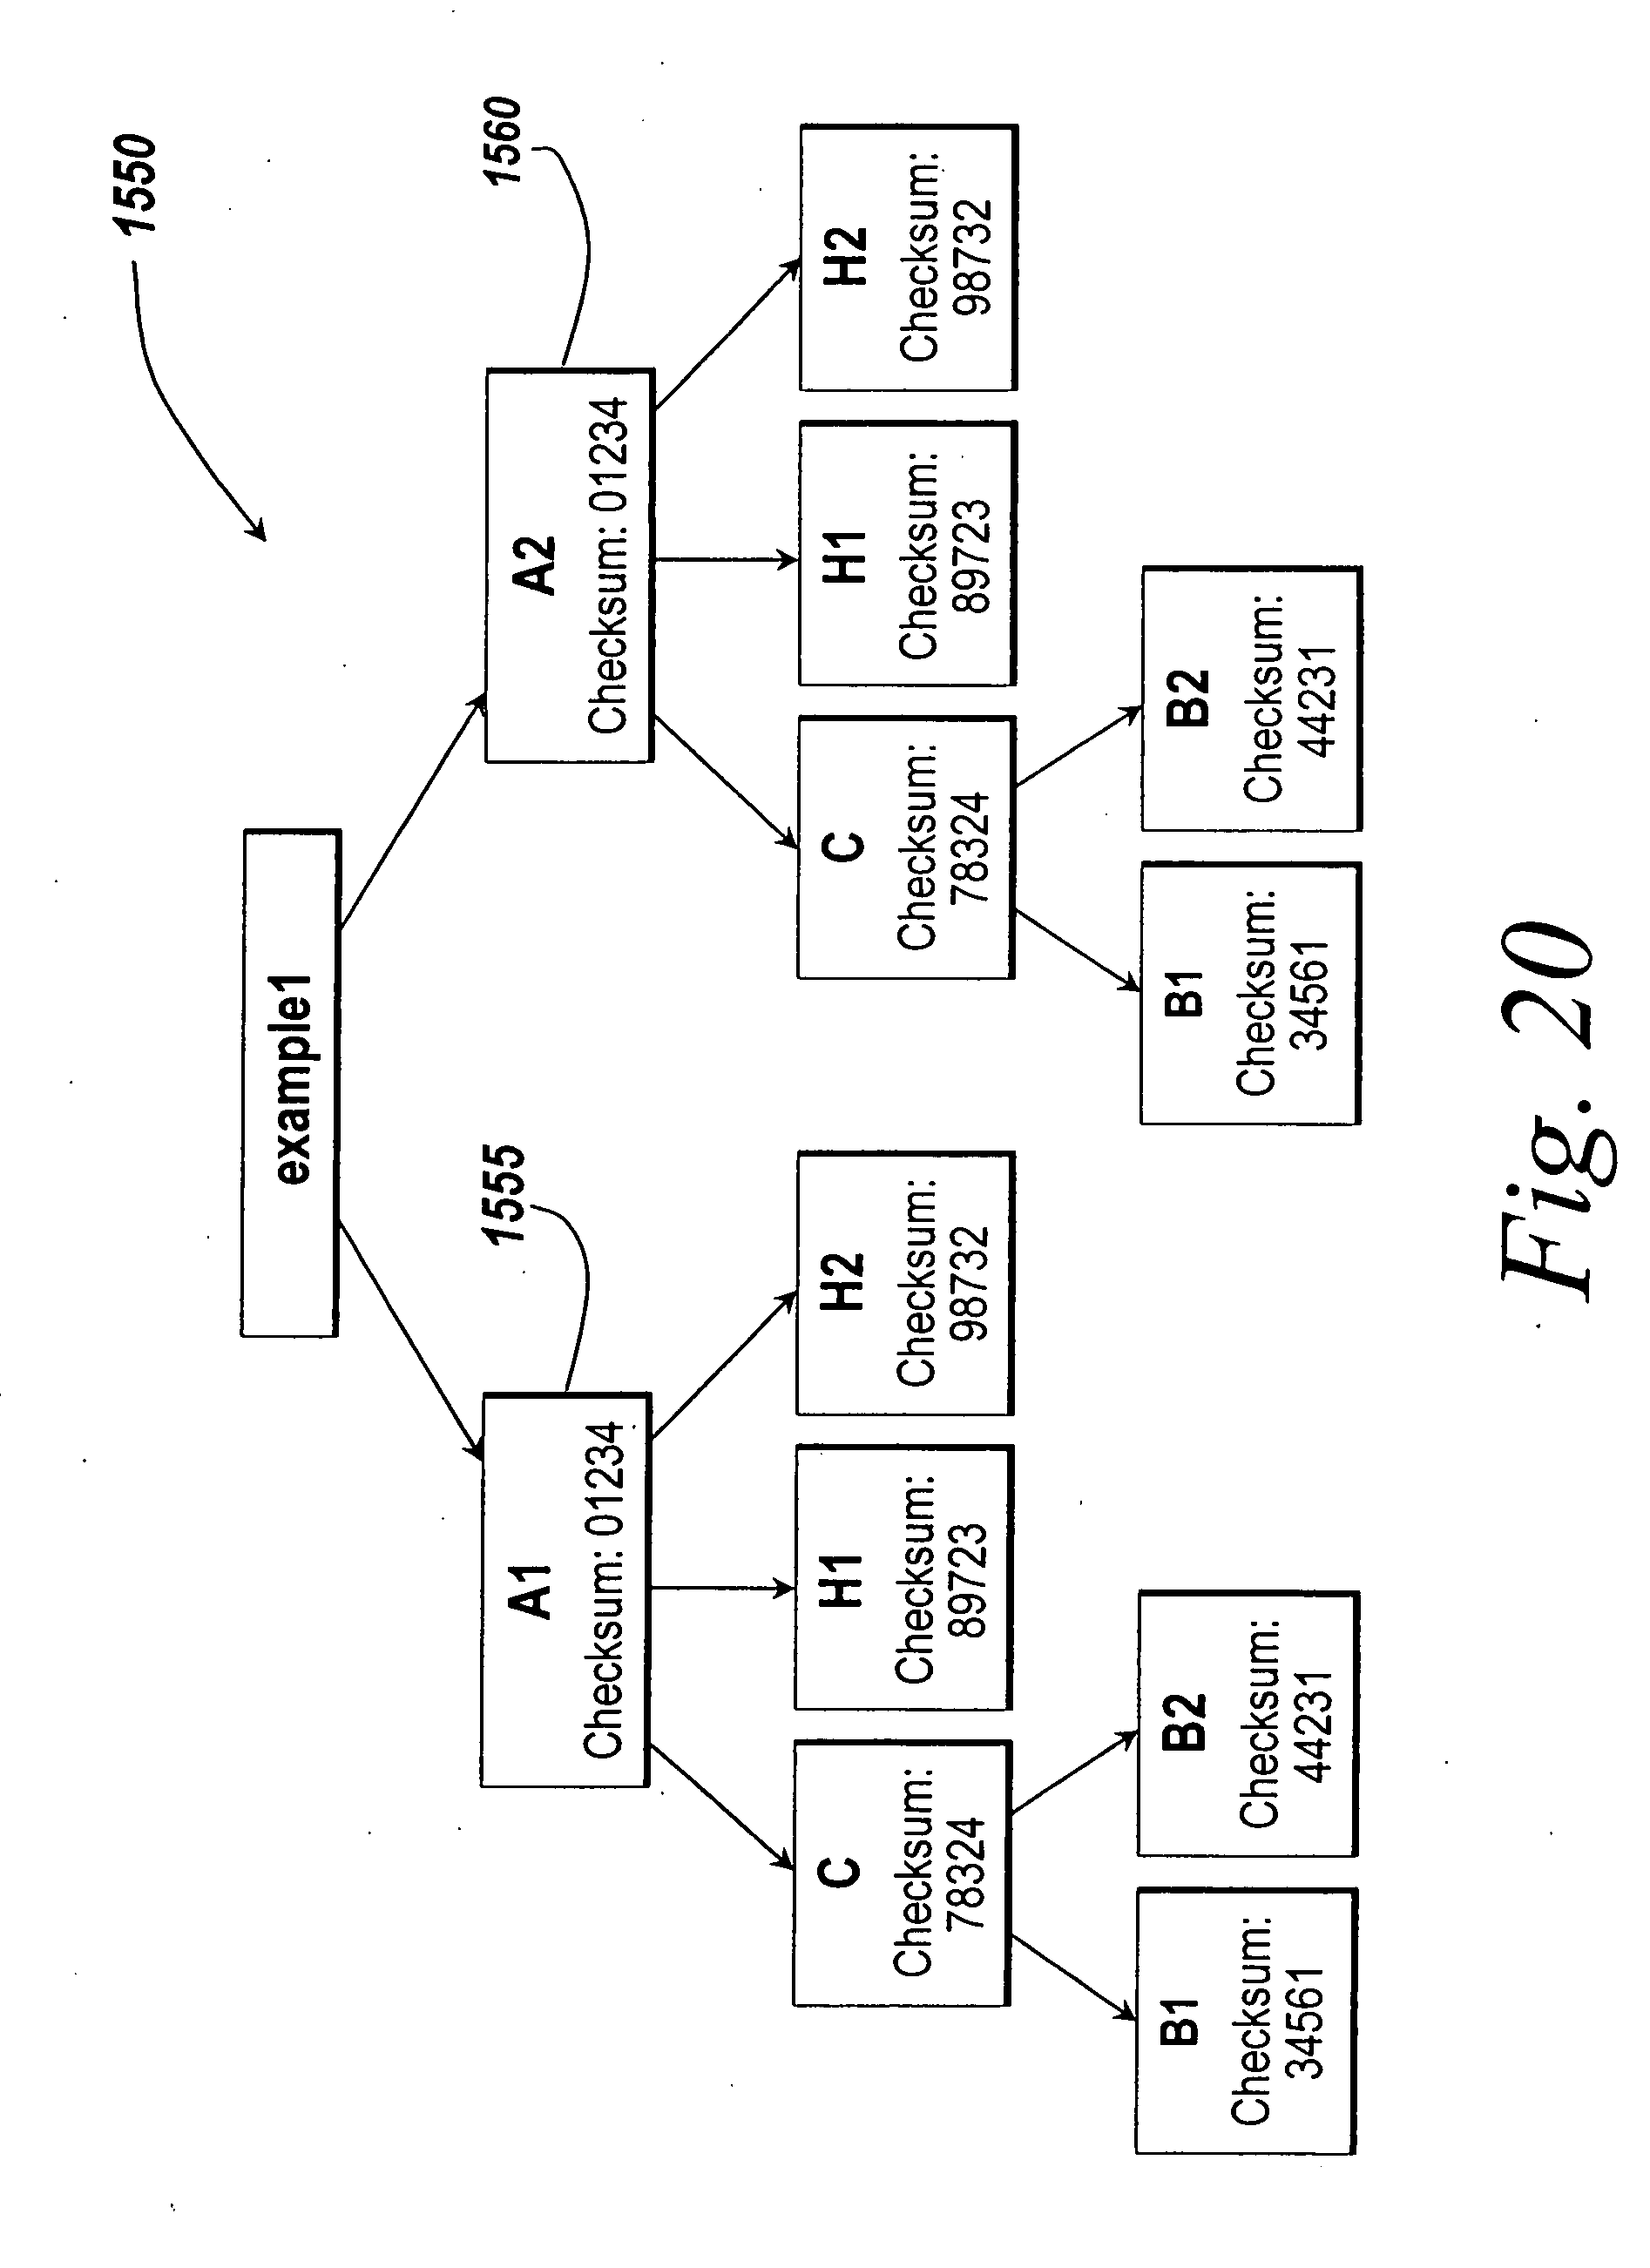 Function And Block Diagram Of Computer Auto Electrical Wiring Sc1088 Radio Circuit Related With